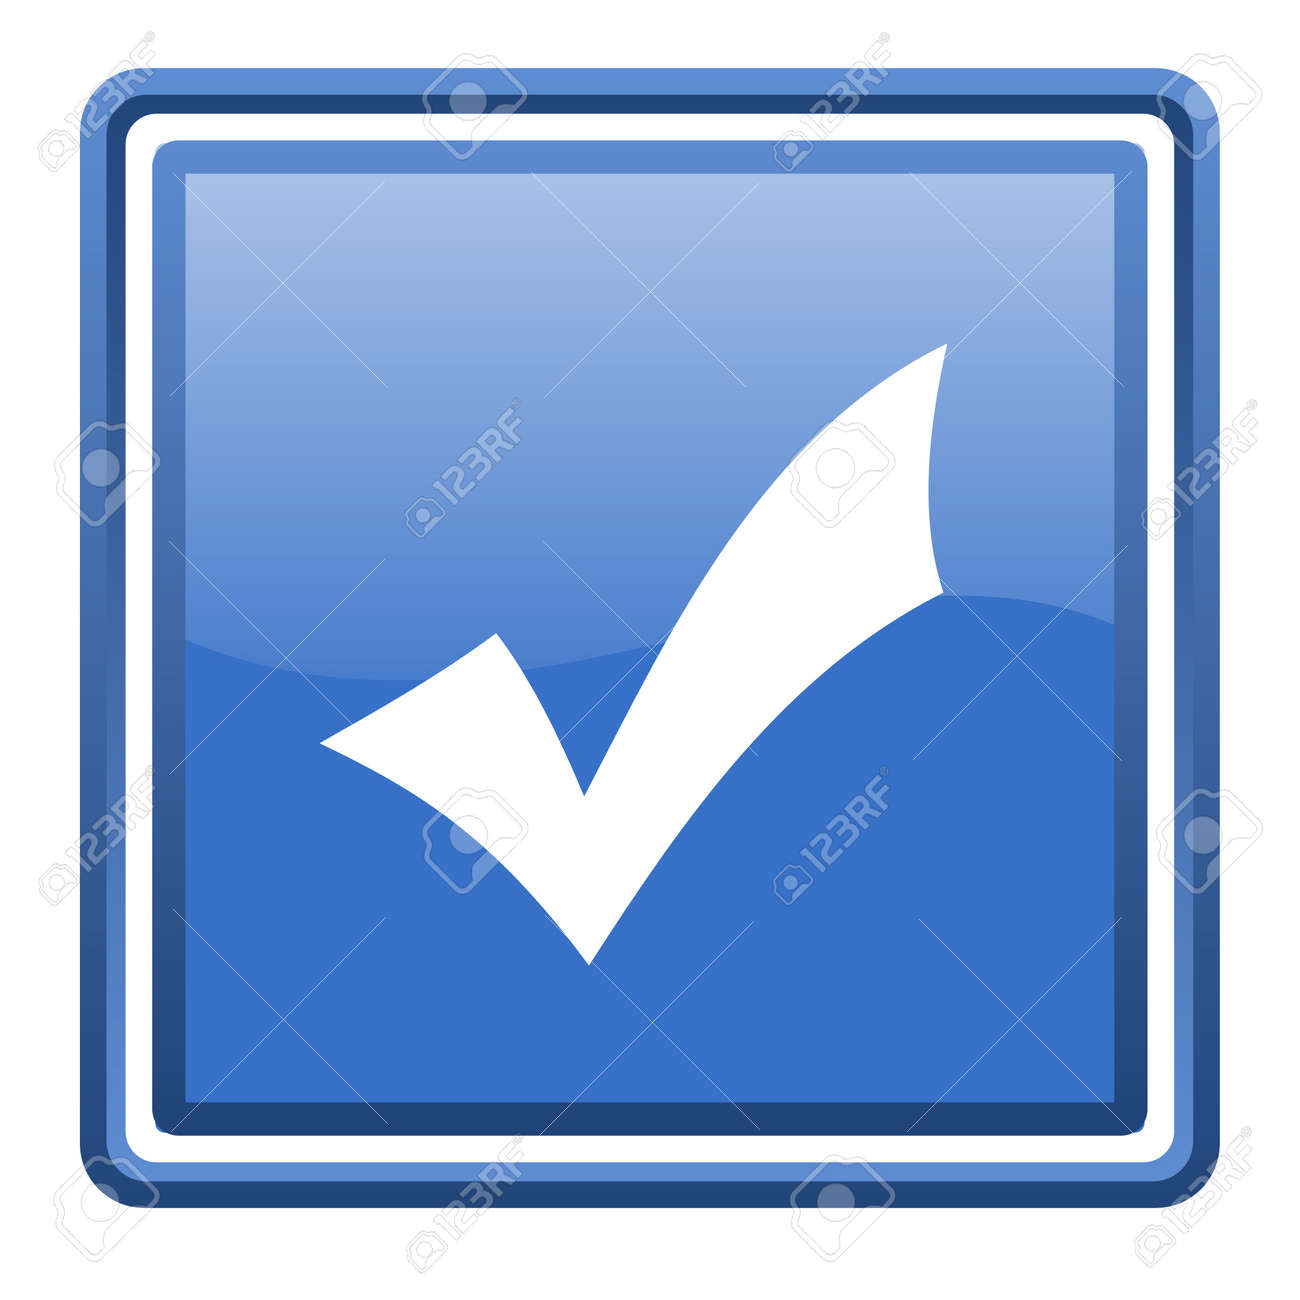 accept blue glossy square web icon isolated Stock Photo - 17093057